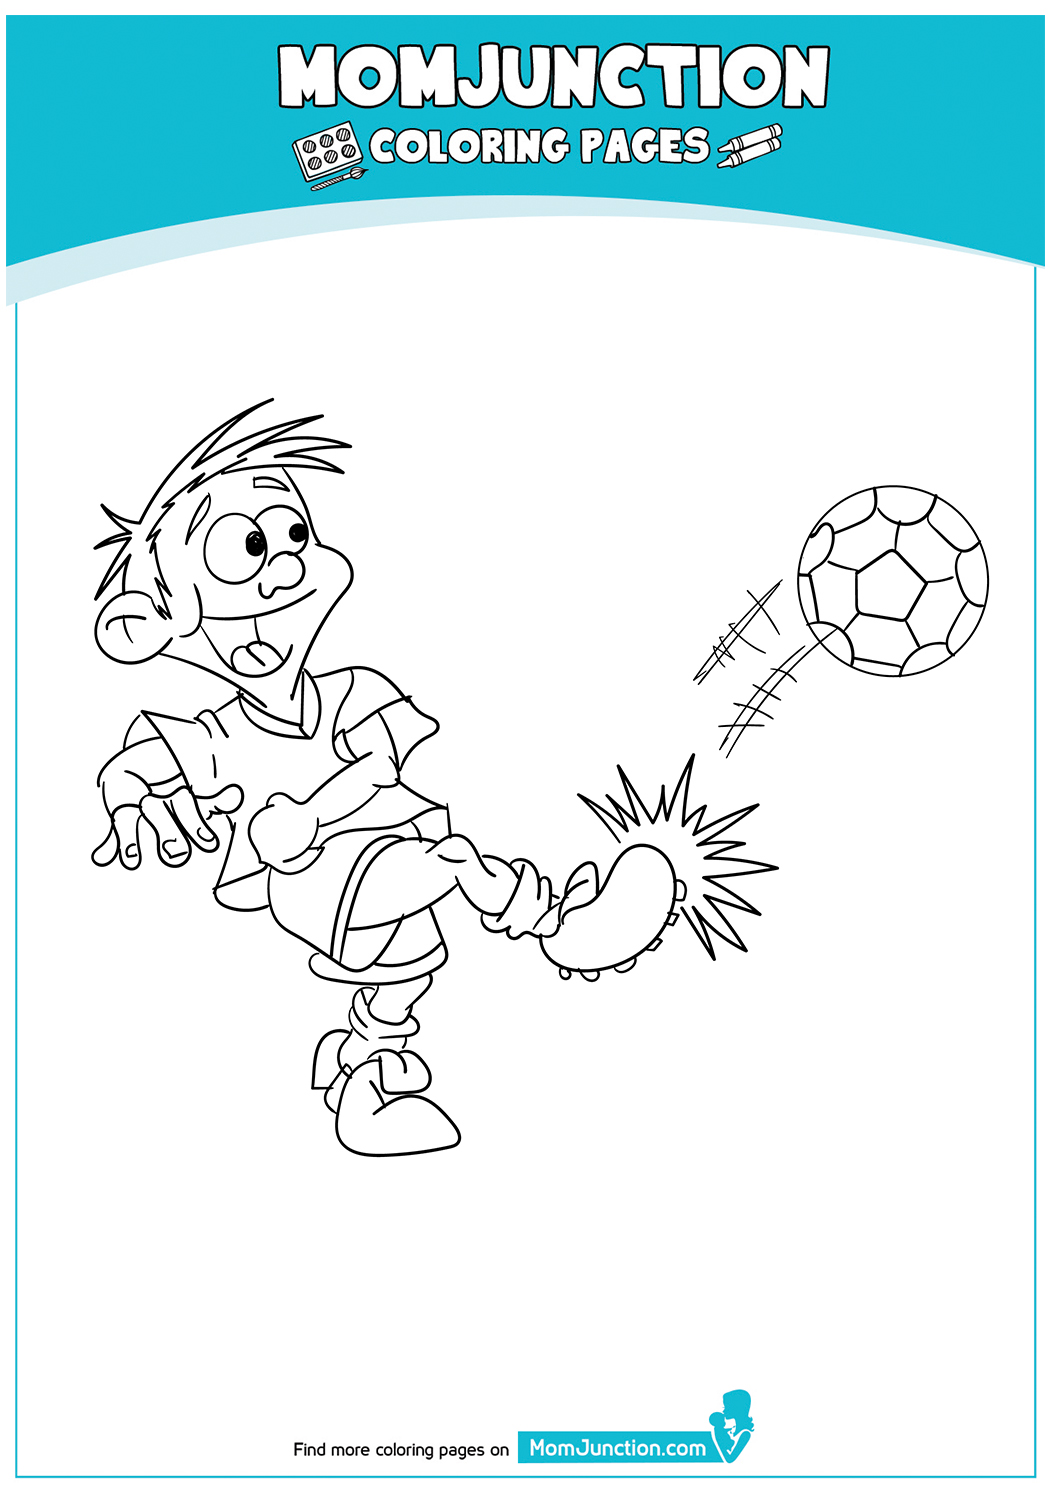 The-Funny-Boy-Playing-Soccer-17